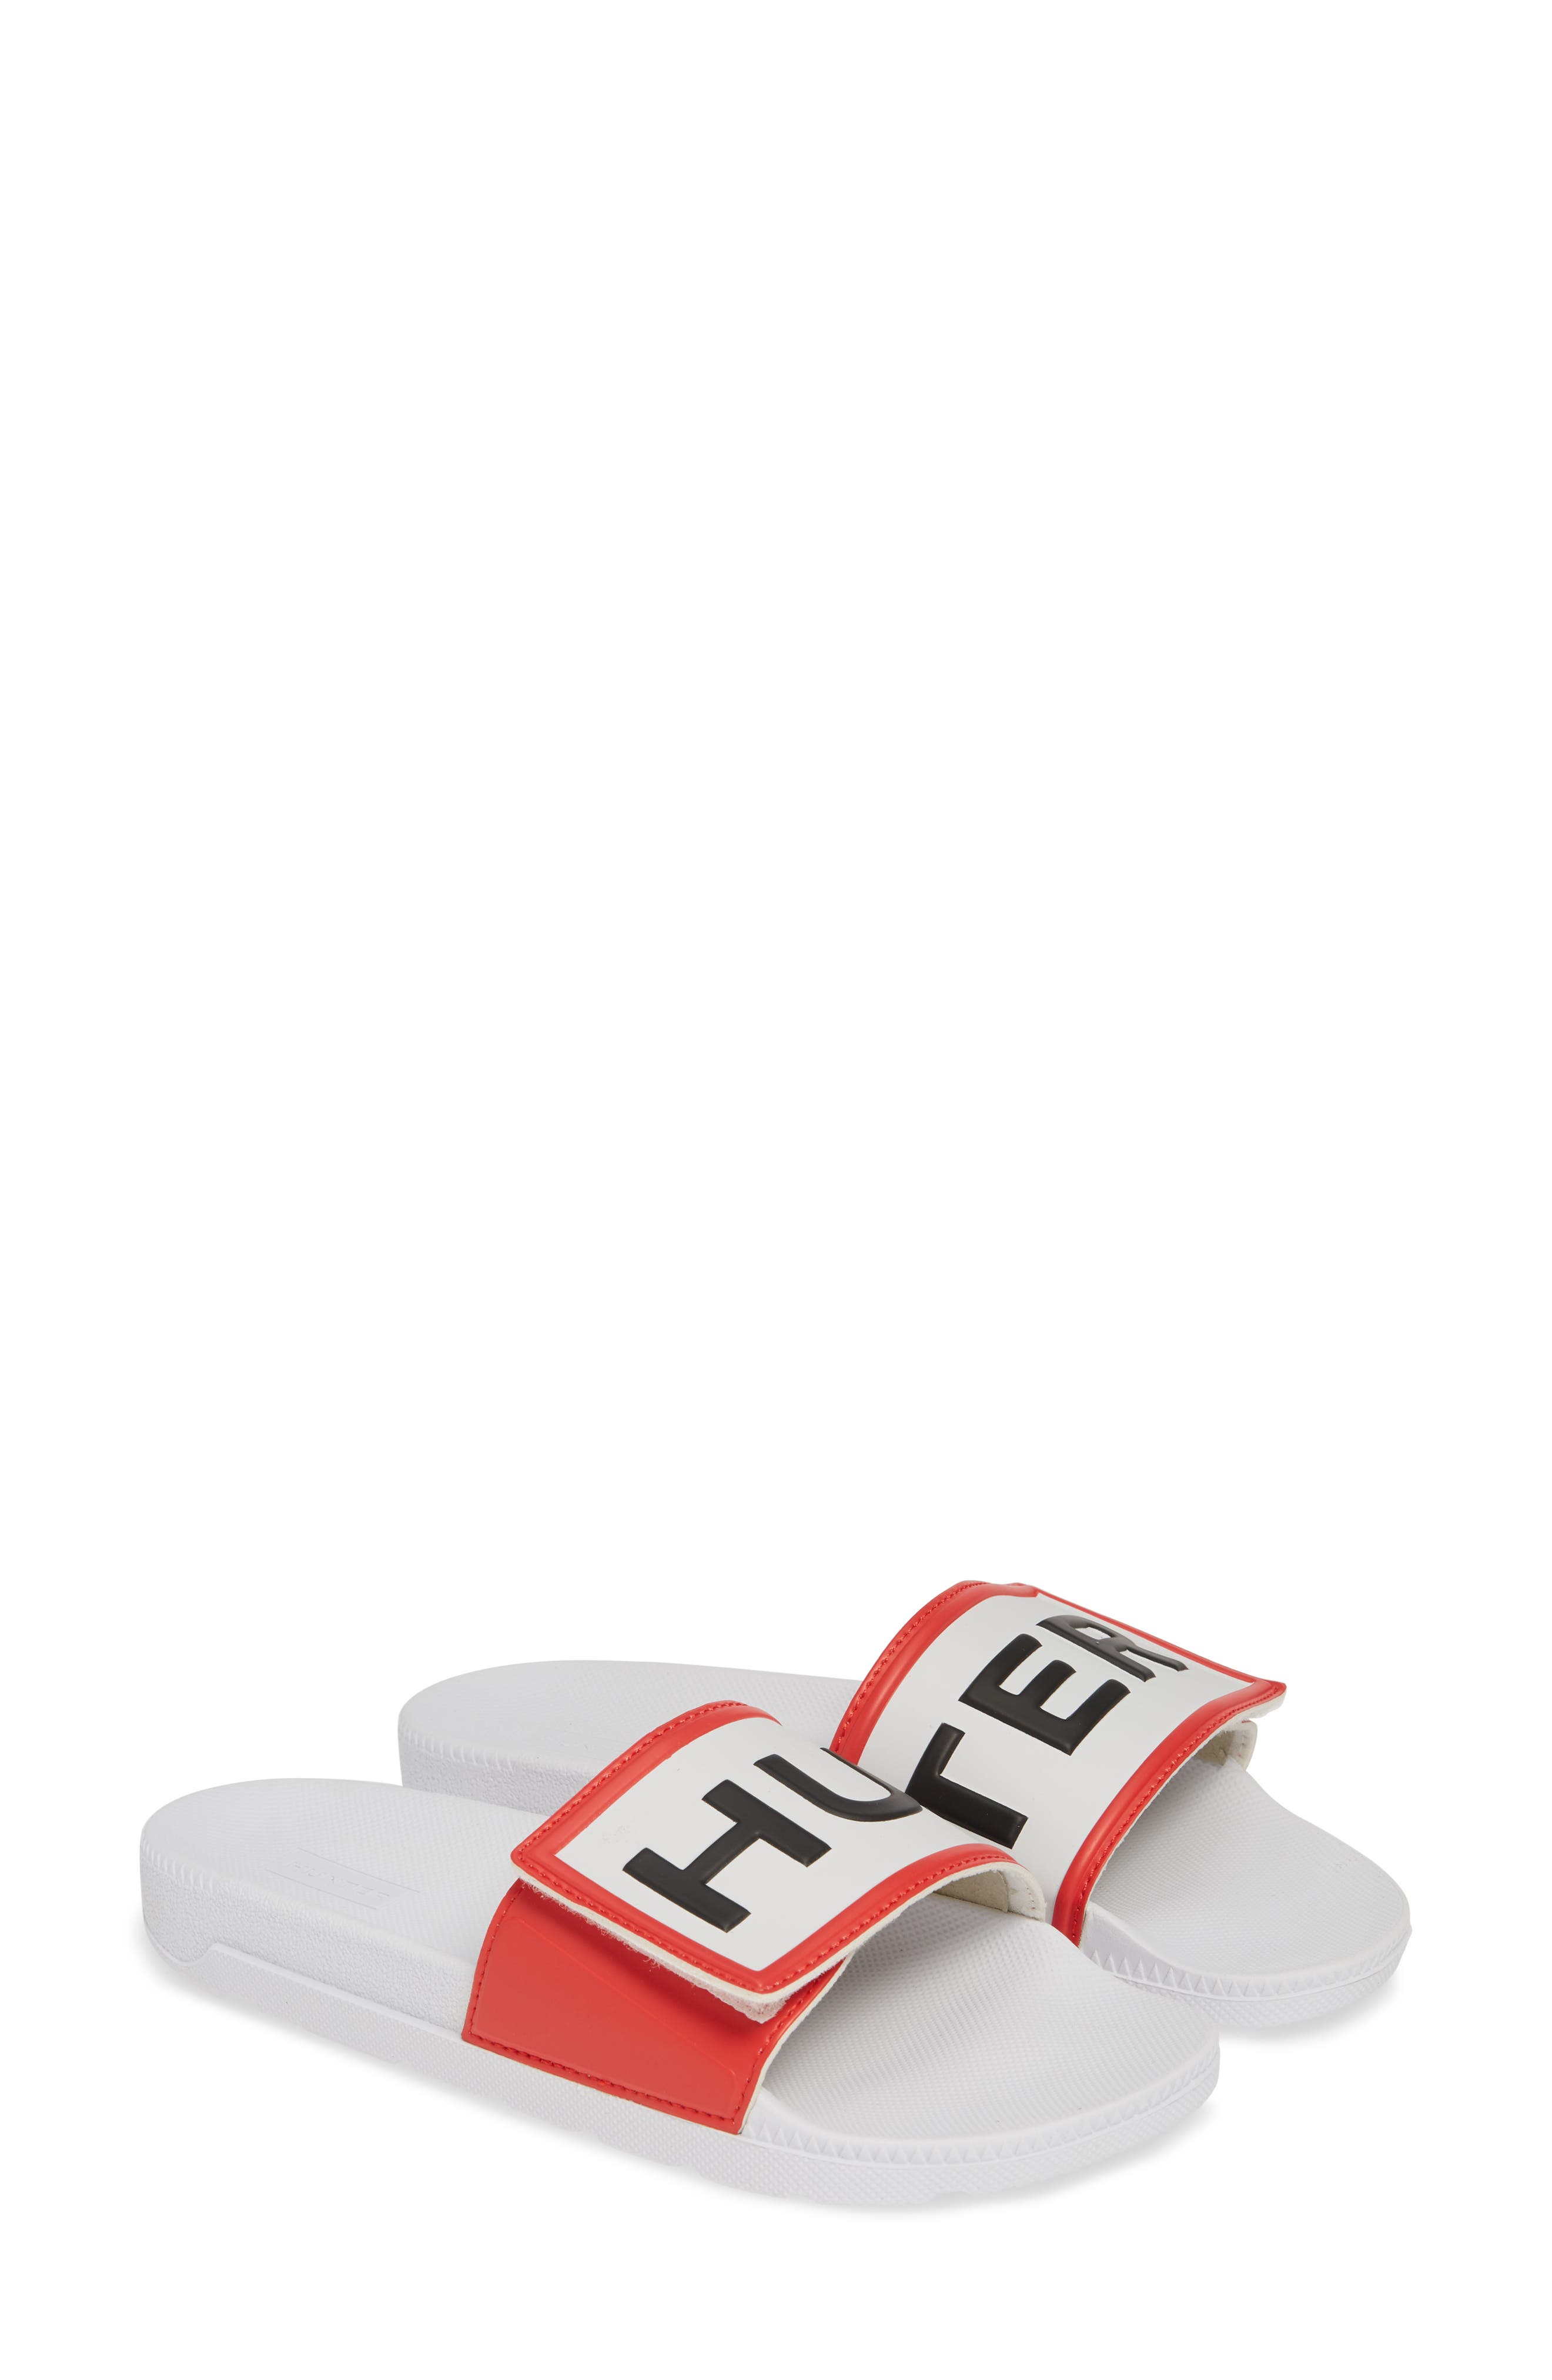 HUNTER,                             Original Adjustable Logo Slide Sandal,                             Alternate thumbnail 2, color,                             WHITE/ WHITE